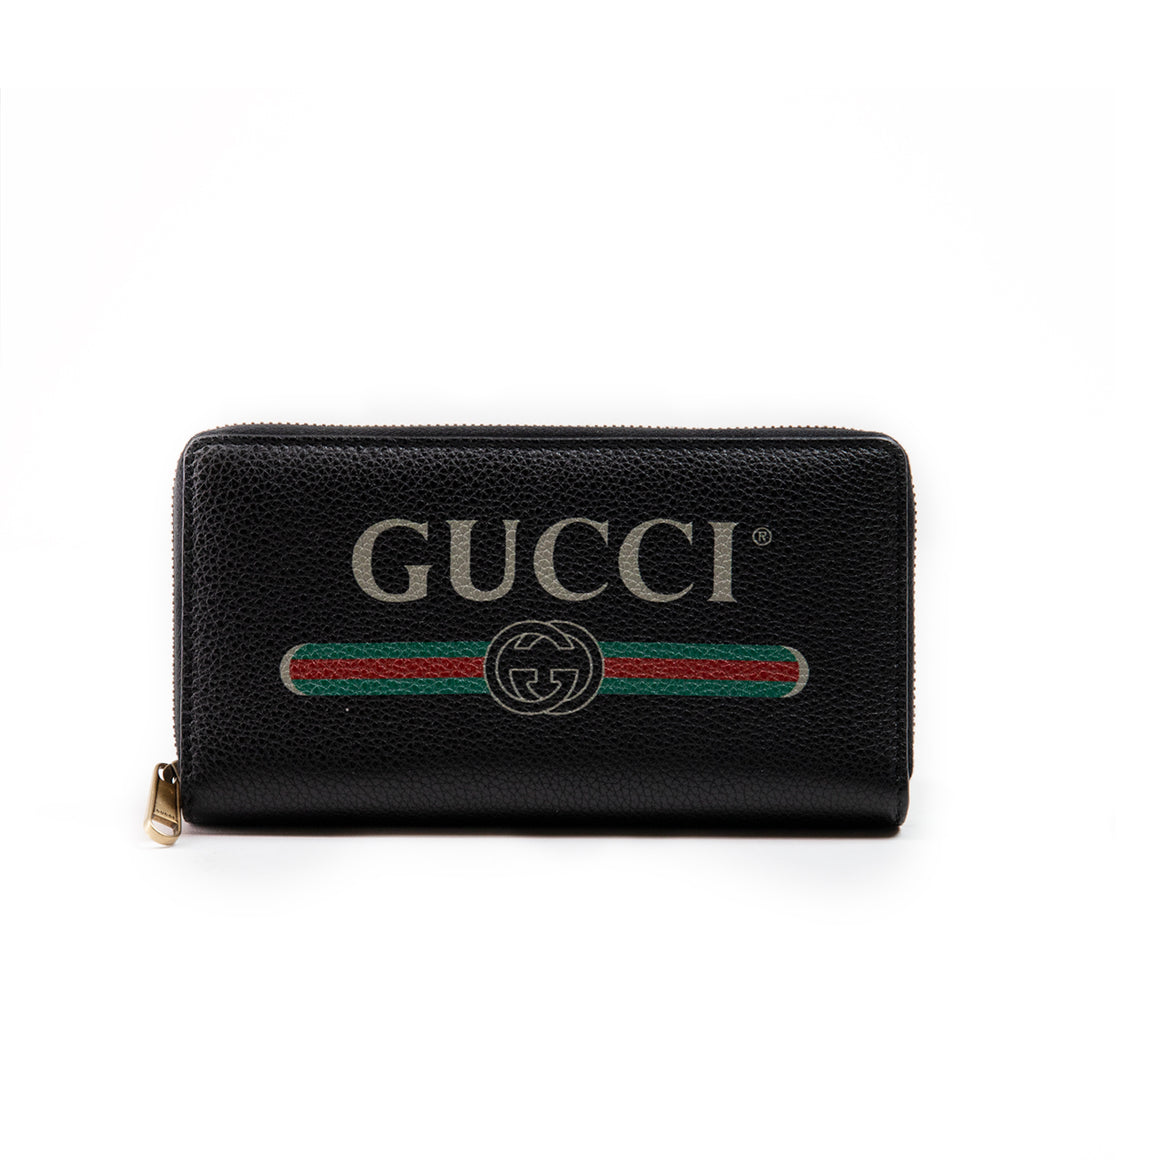 Gucci Black Signature Logo Zip-around Wallet